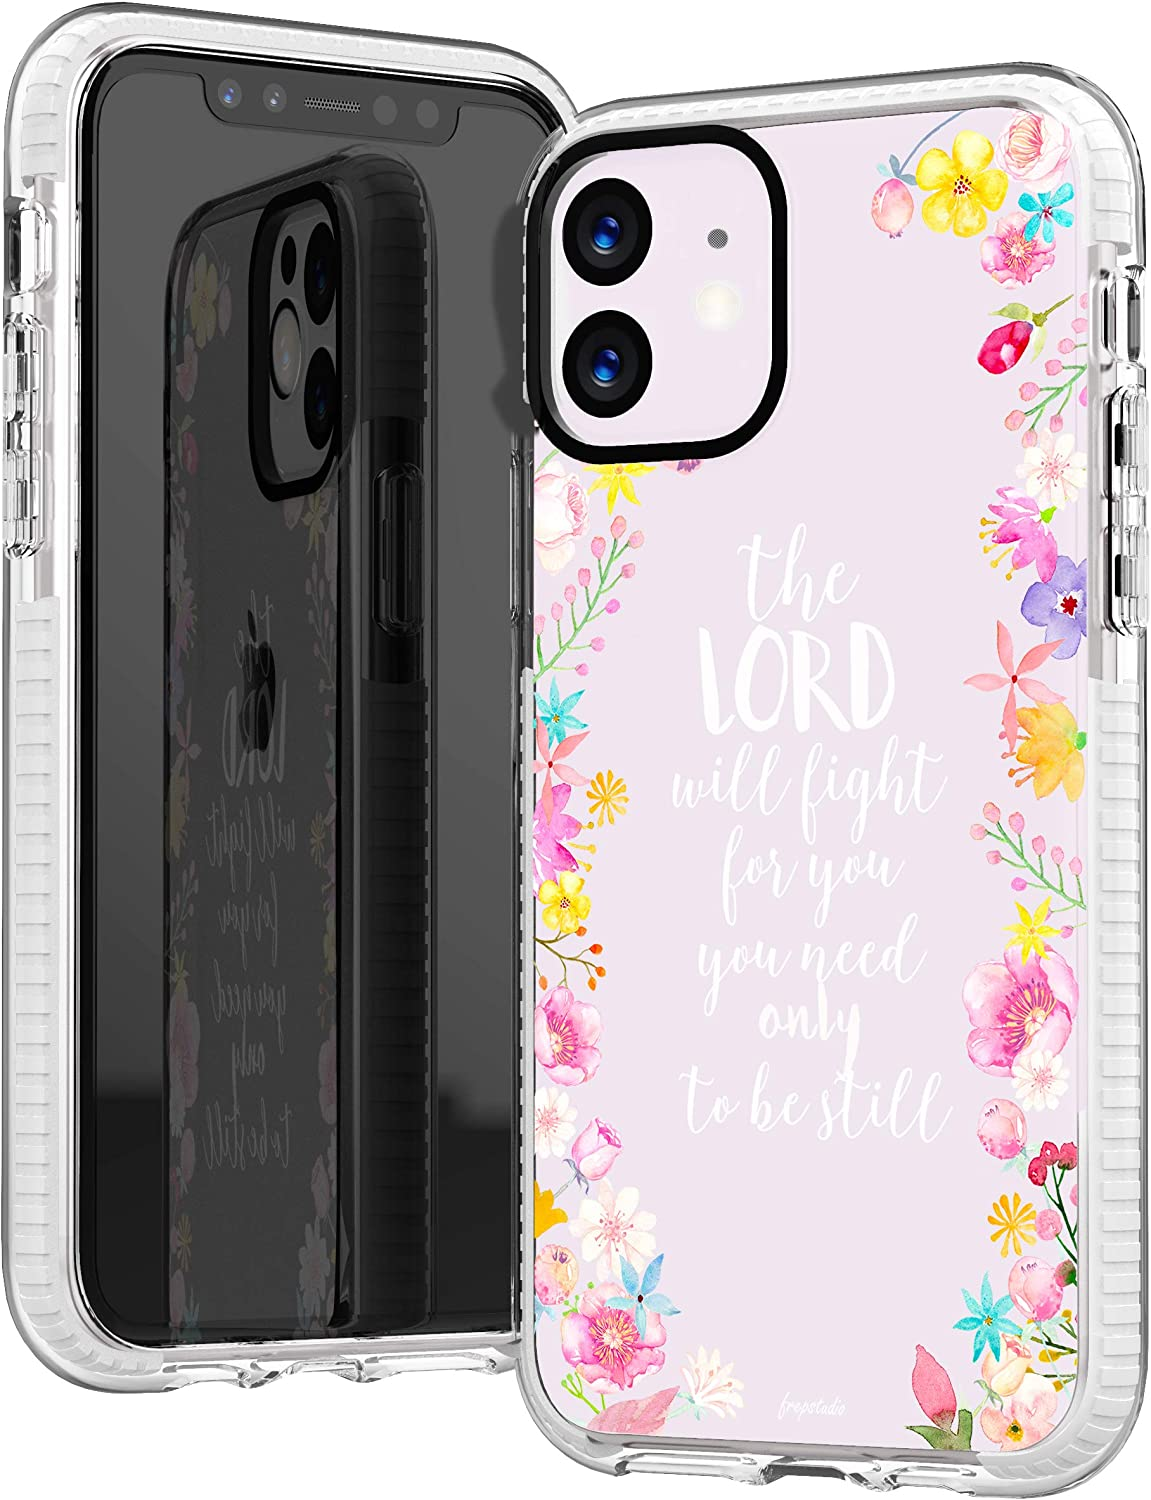 iPhone 11 Case,Cute Pink Floral Flowers Rose Daisy Bible Verses Girls Women Power Quote Christ Christian Inspirational Exodus 14:14 Trendy Soft Protective Clear Design Case Compatible for iPhone 11